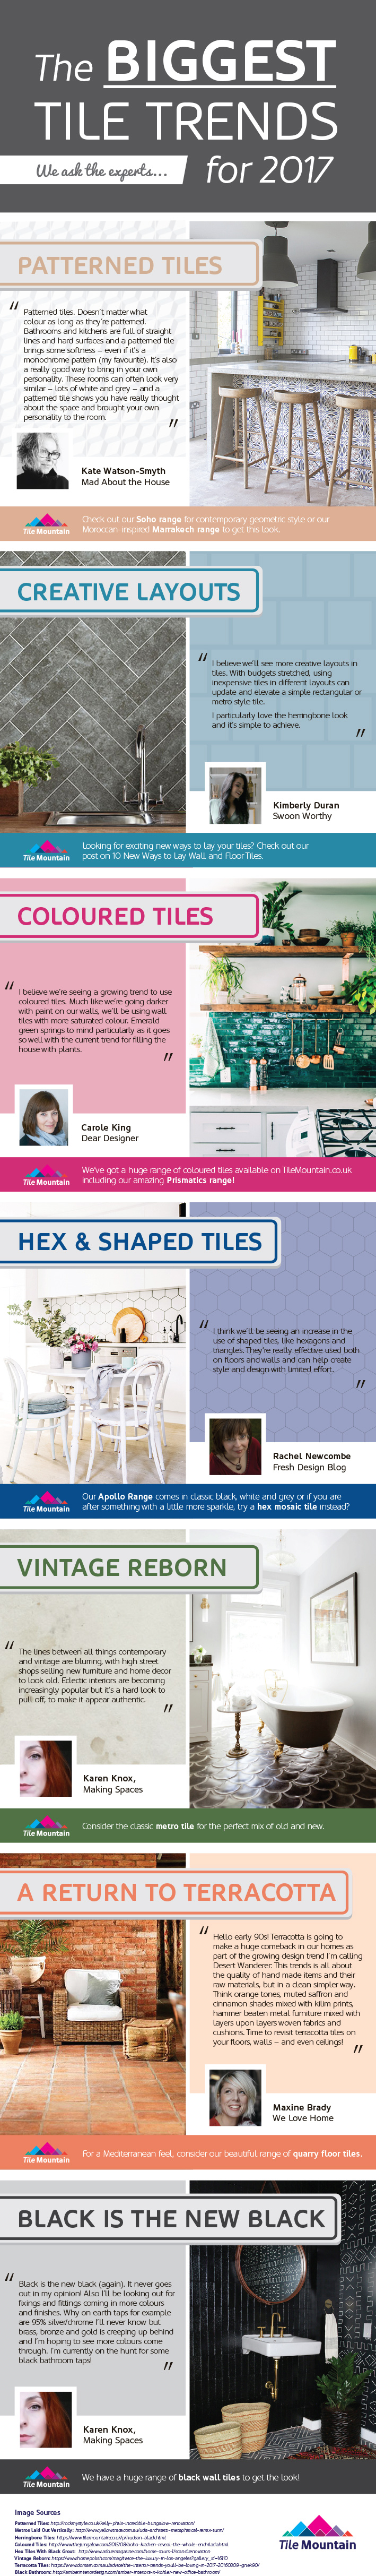 We asked the experts for their insight in to what are tipped to be THE biggest tile trends for 2017